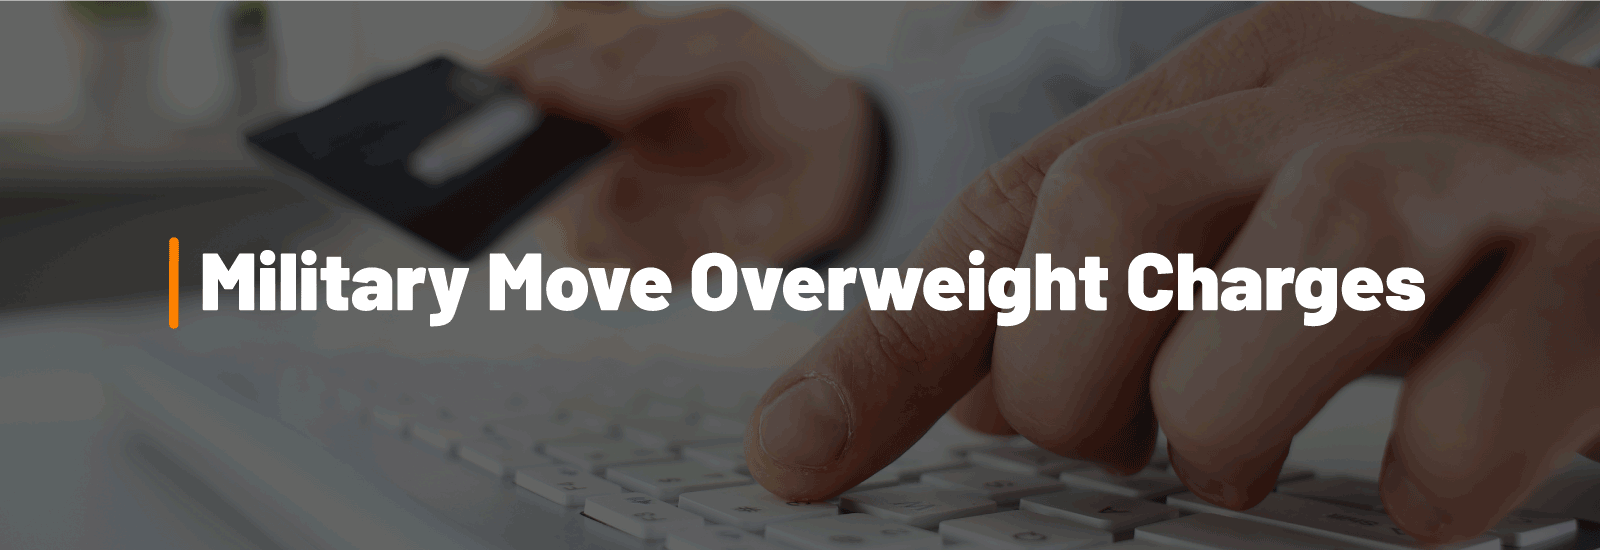 Military Move Overweight Charges